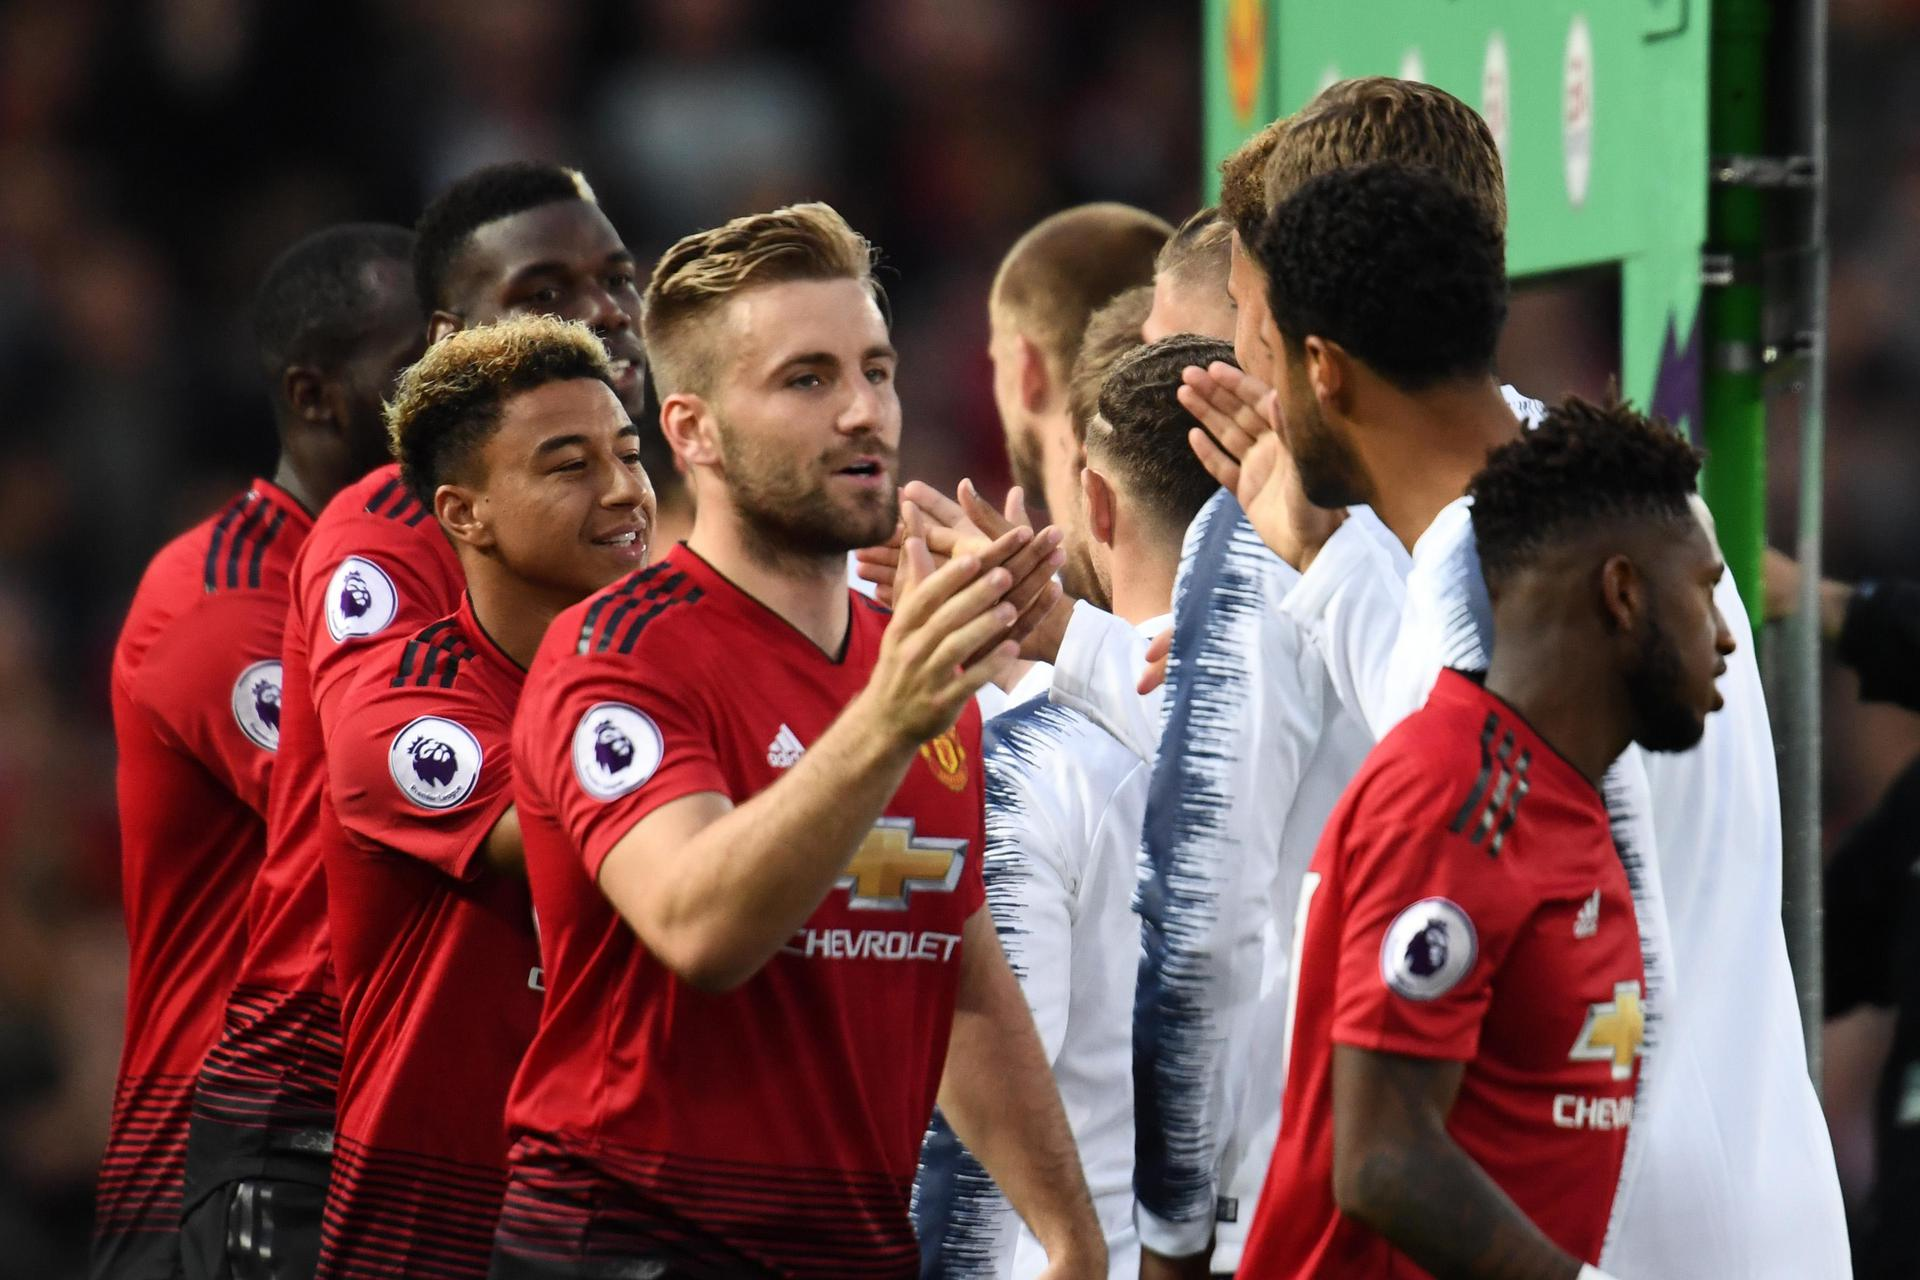 Luke Shaw greets his opponents from Tottenham ahead of kick-off